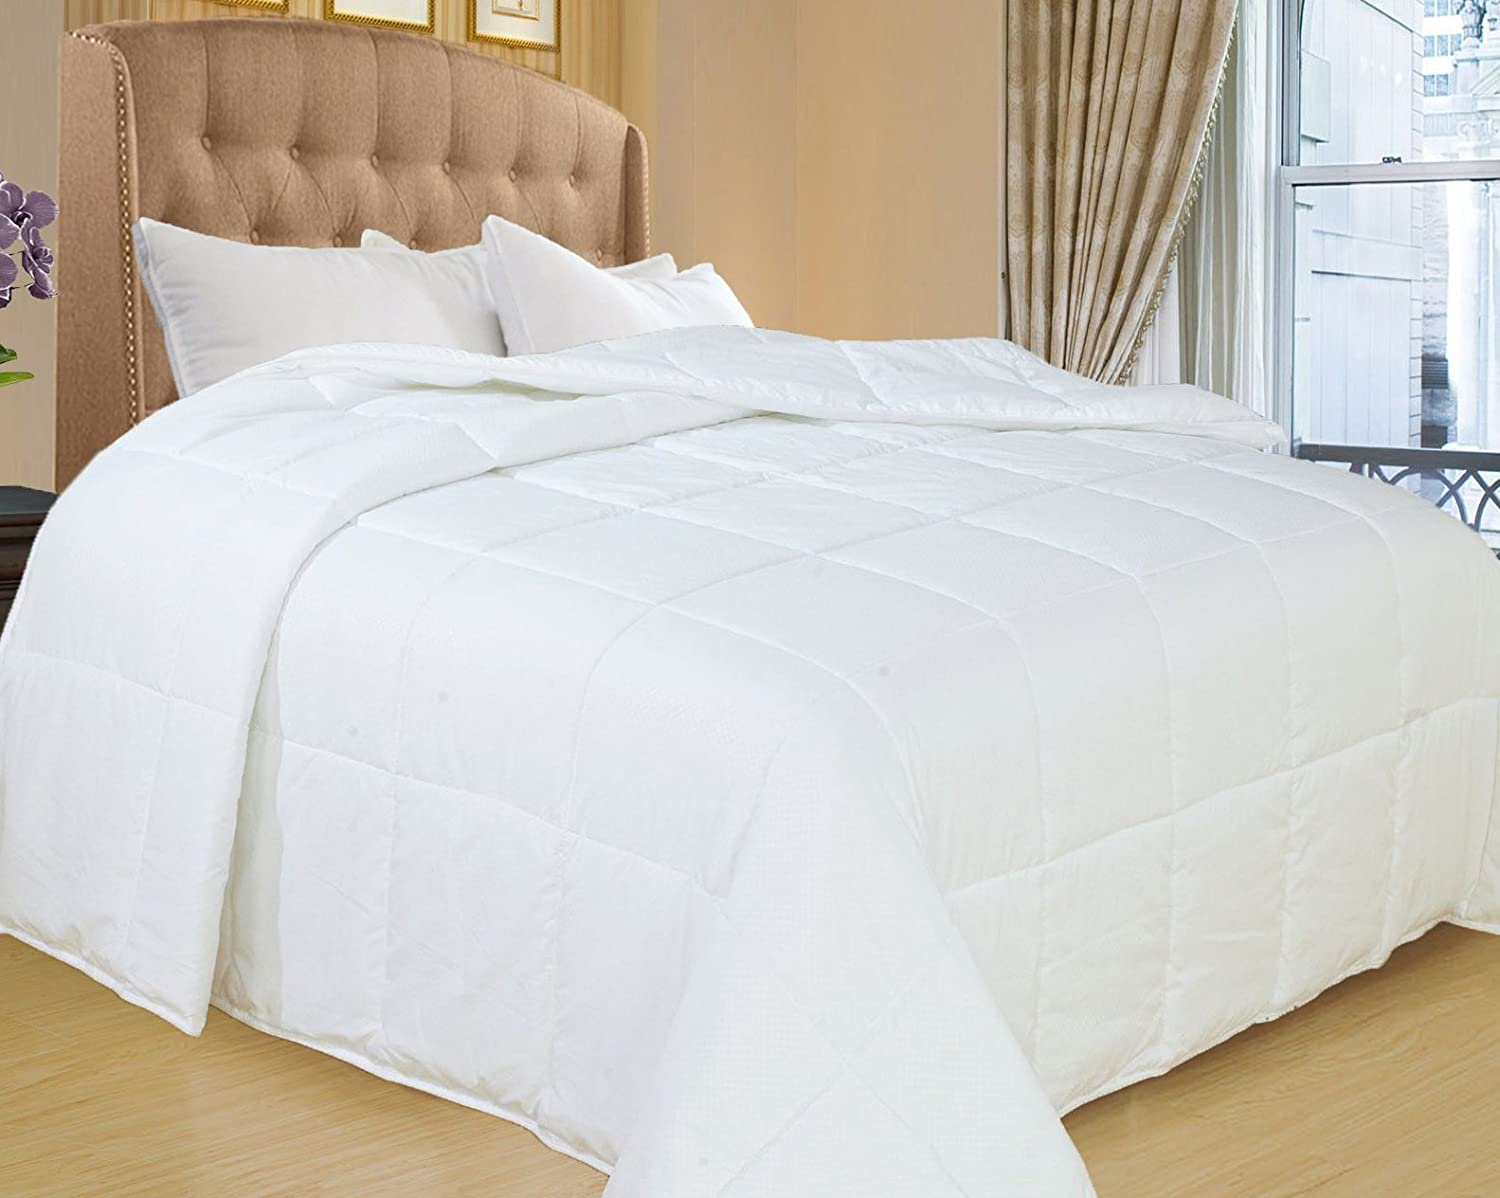 Natural Comfort White Down Alternative Comforter with Embossed Microfiber Shell, Light Weight Filled, Full